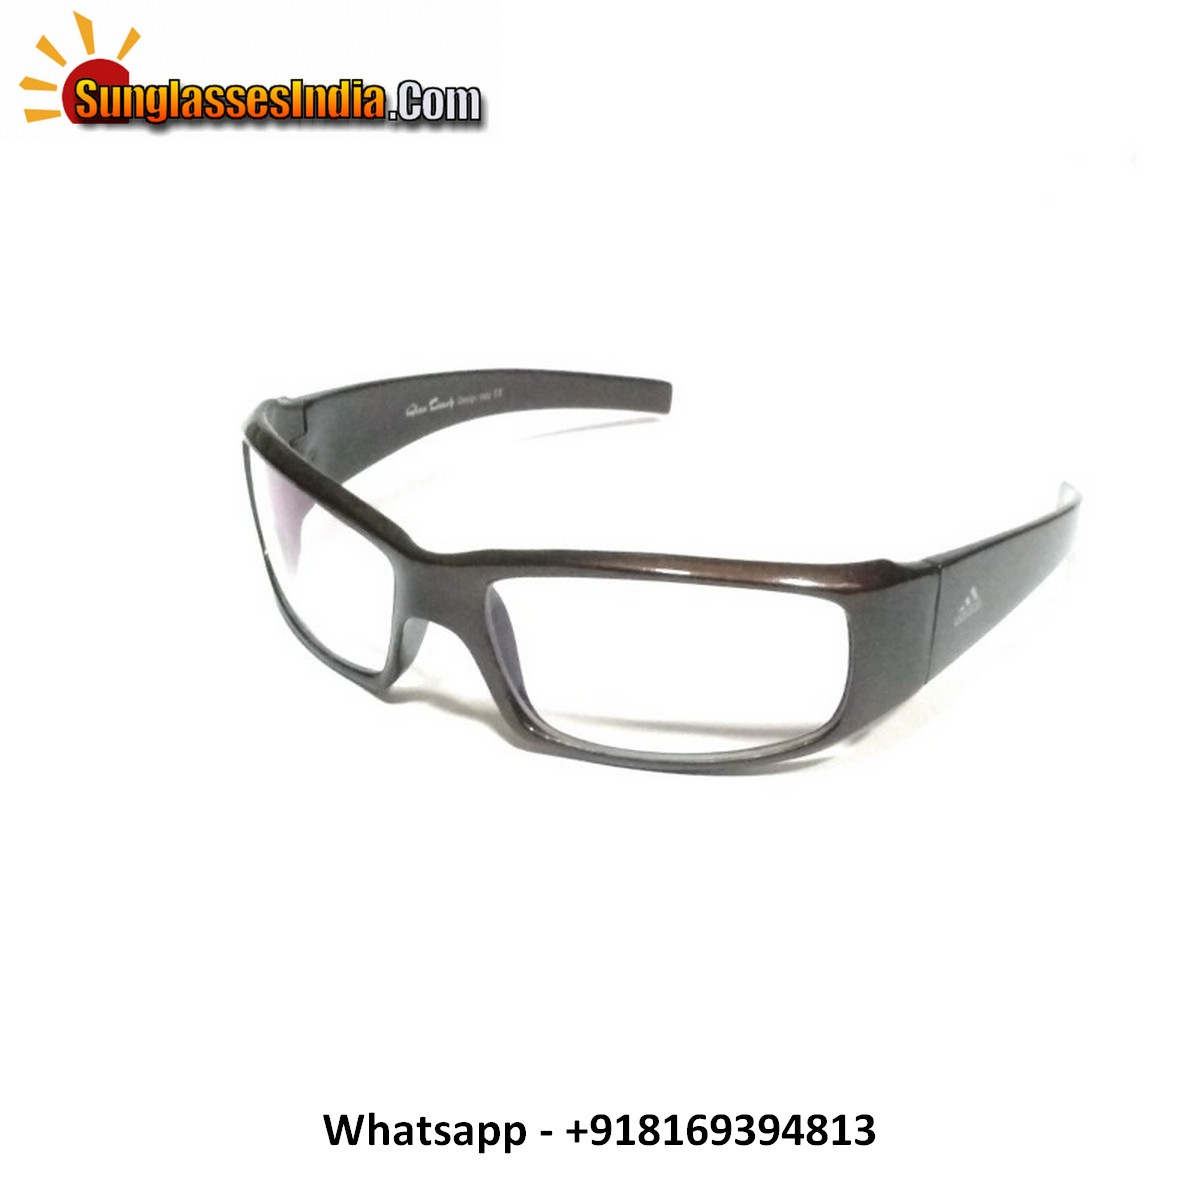 Clear Driving Sunglasses with anti glare coating lenses